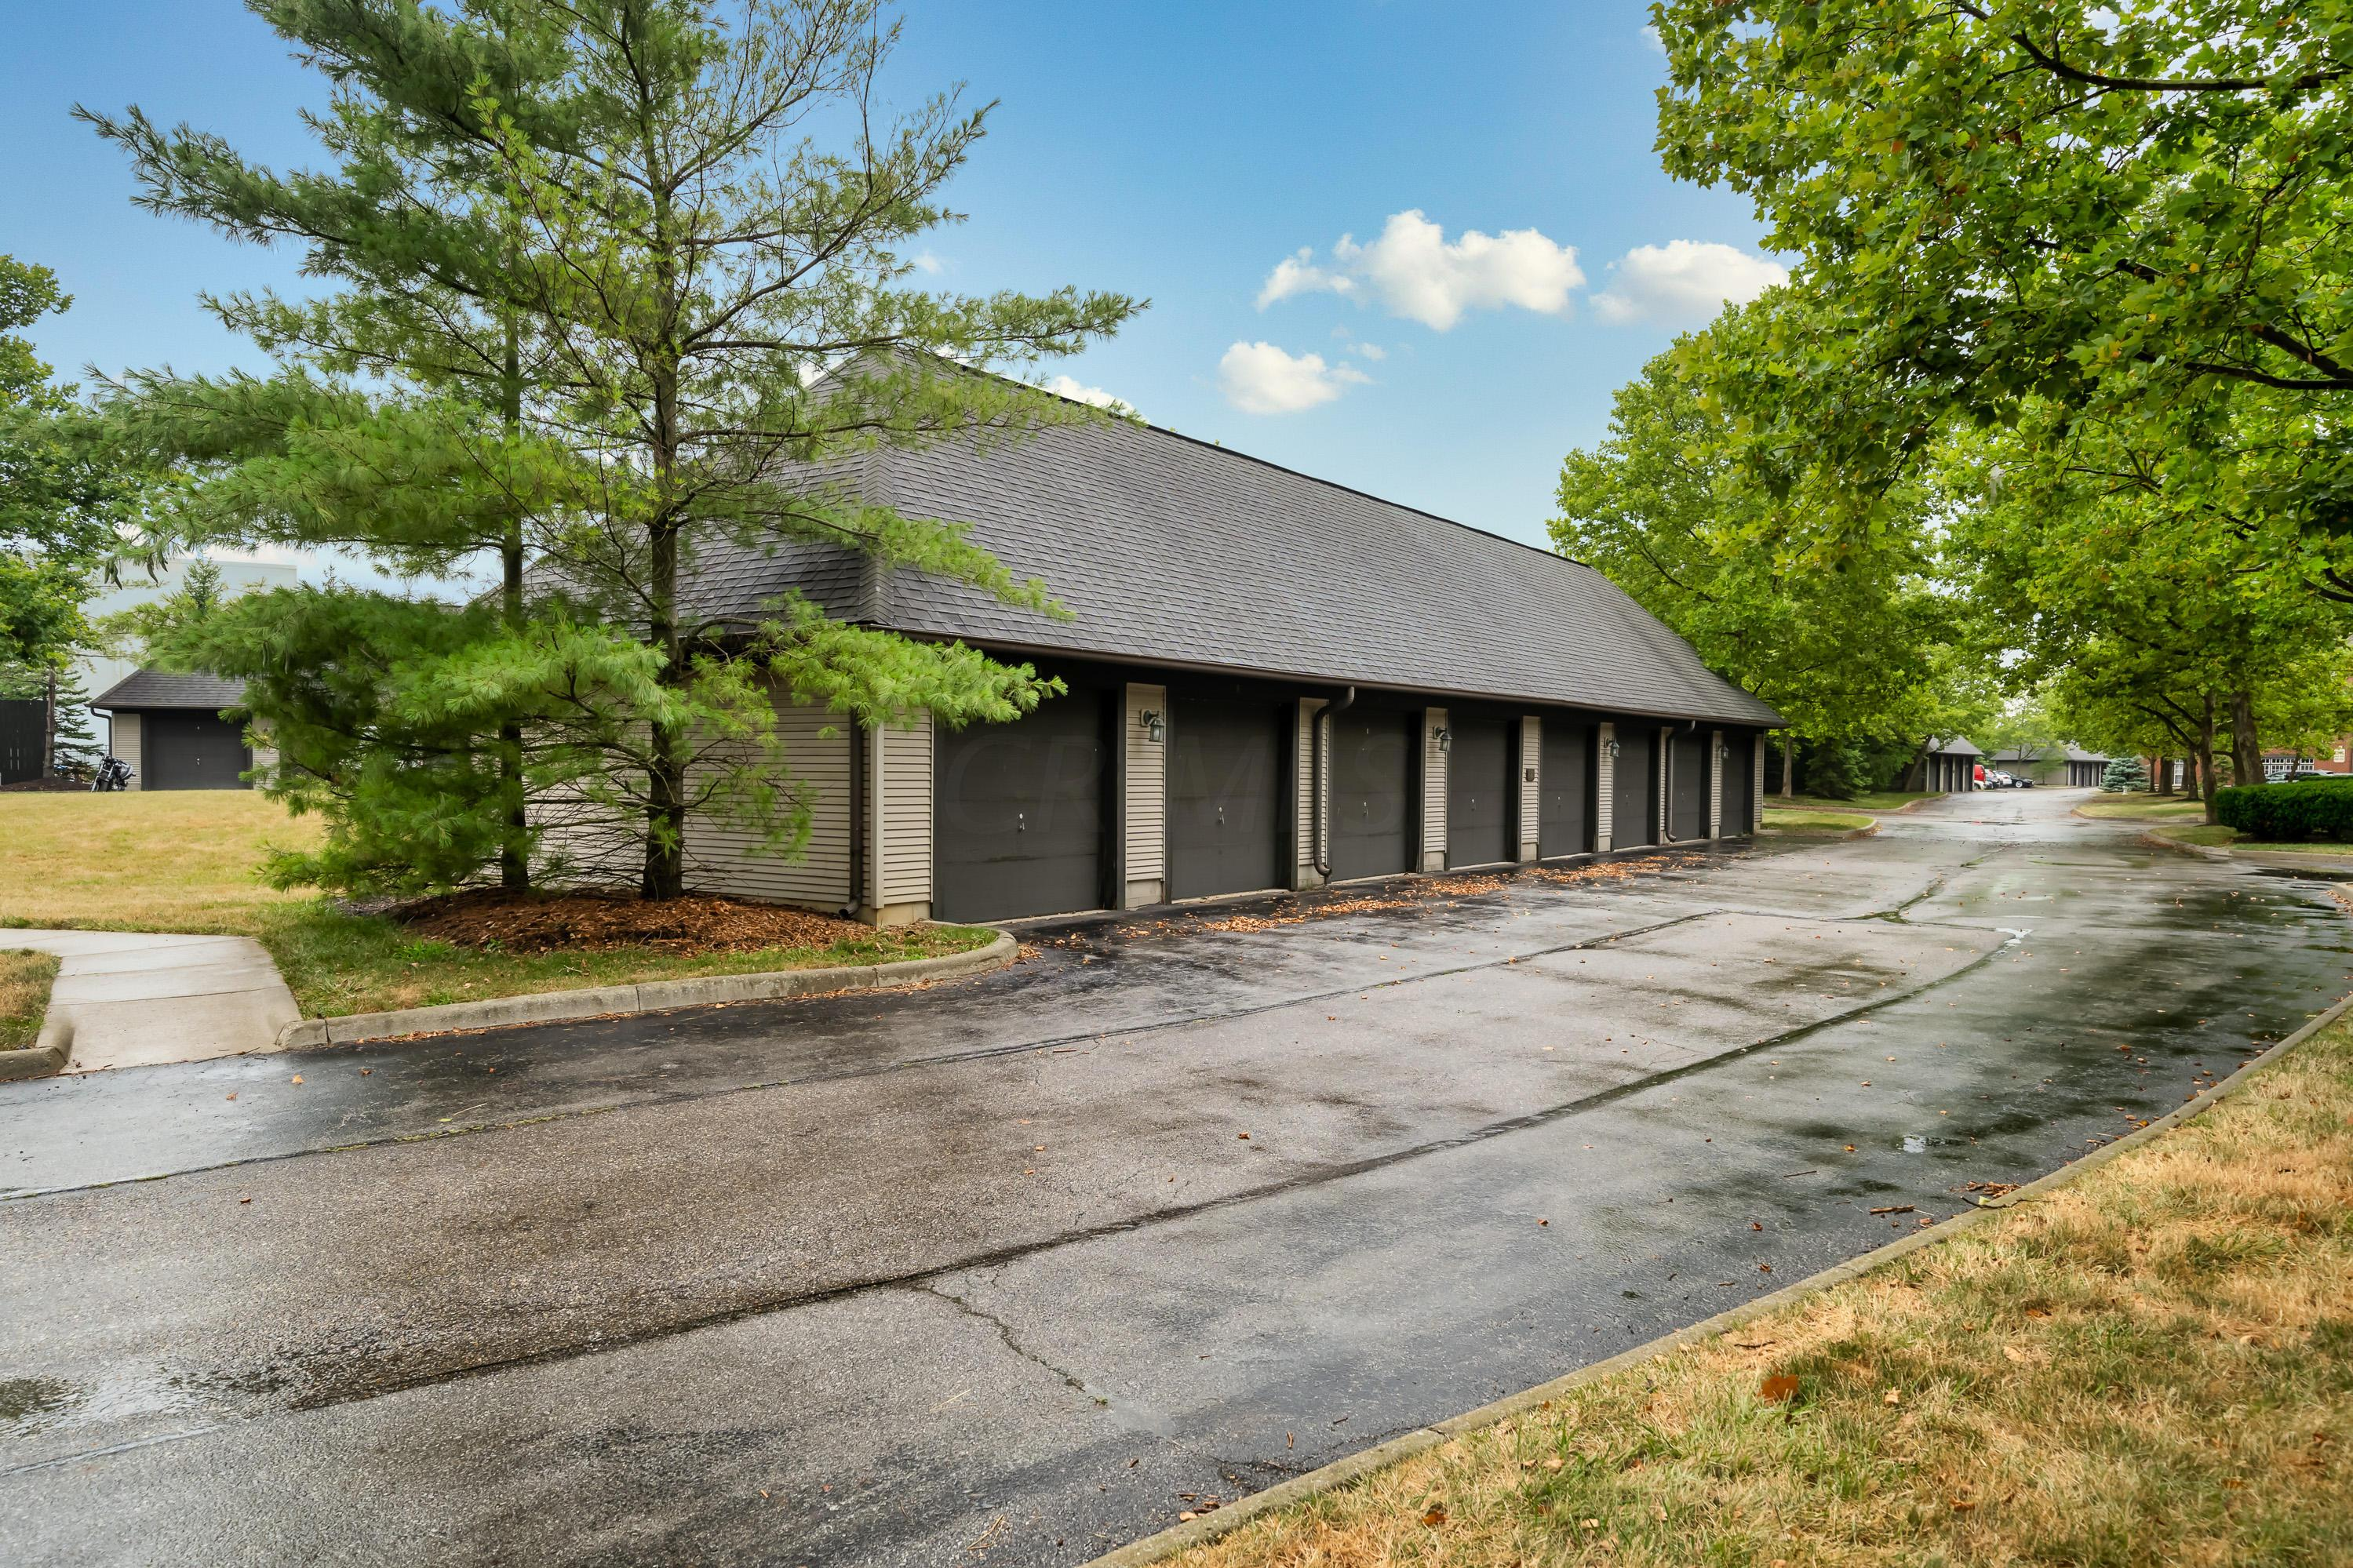 6003 Craughwell Lane, Dublin, Ohio 43017, 2 Bedrooms Bedrooms, ,2 BathroomsBathrooms,Residential,For Sale,Craughwell,220024692